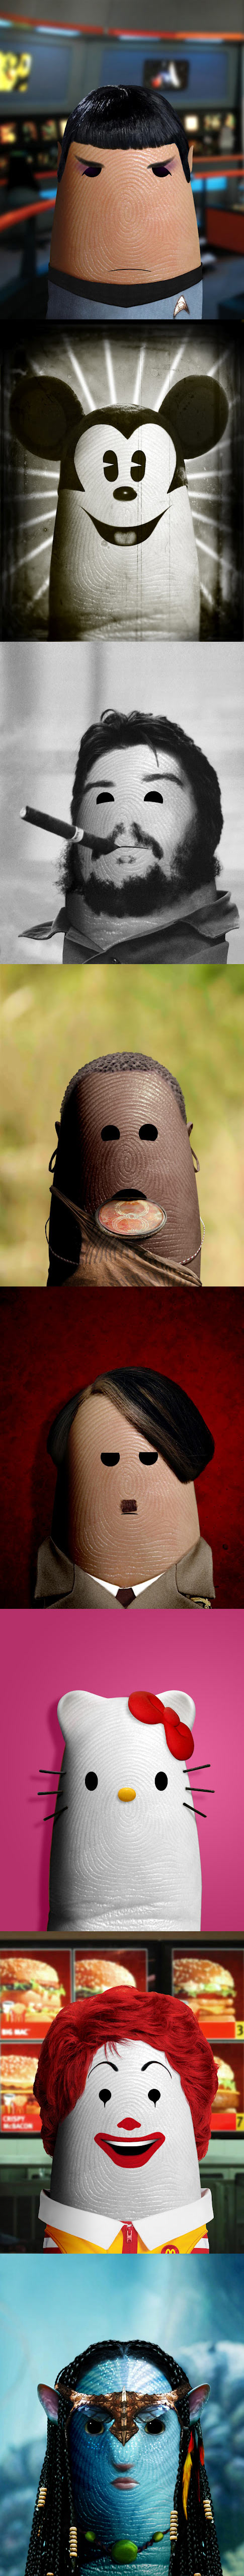 funny-iconic-people-finger-portrait-Jobs